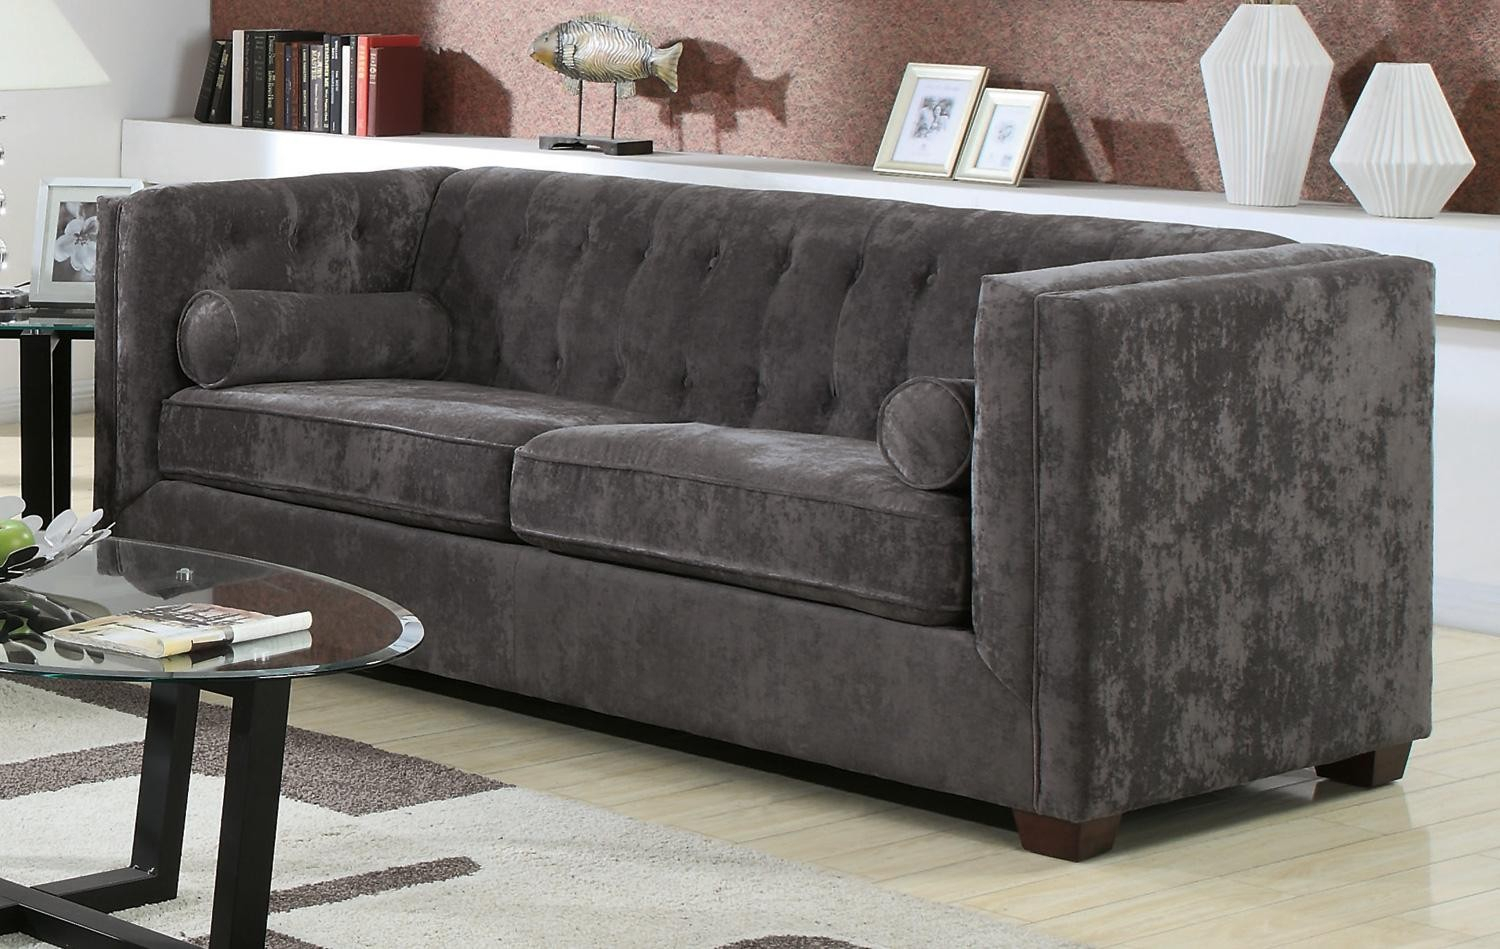 Alexis Charcoal Sofa From Coaster (504491) | Coleman Furniture Inside Charcoal Grey Sofas (View 13 of 15)